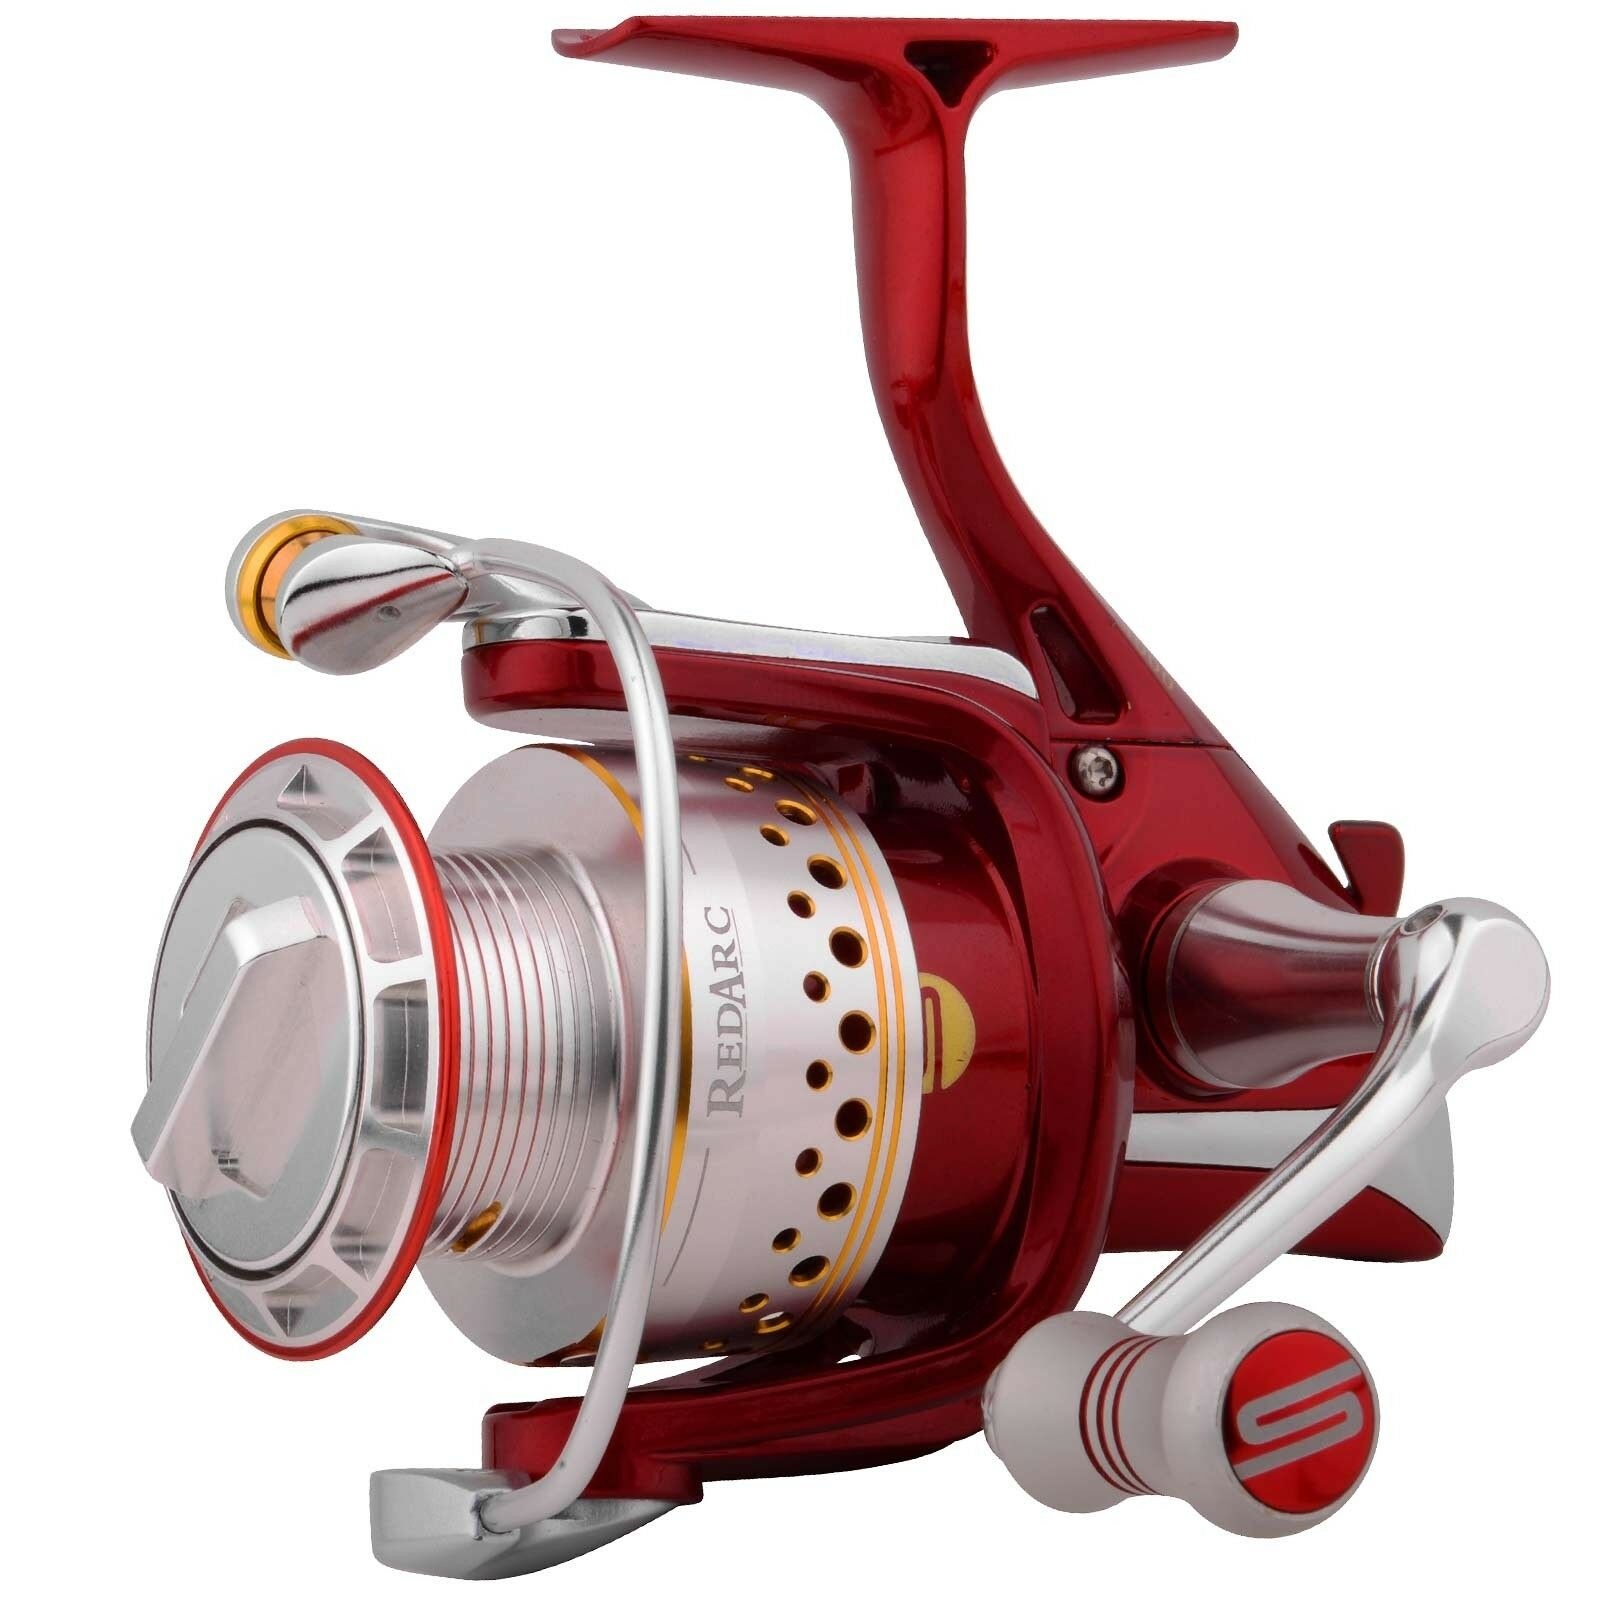 Spro 4000 Angelrolle - ROT Arc 4000 Spro 1a0efc